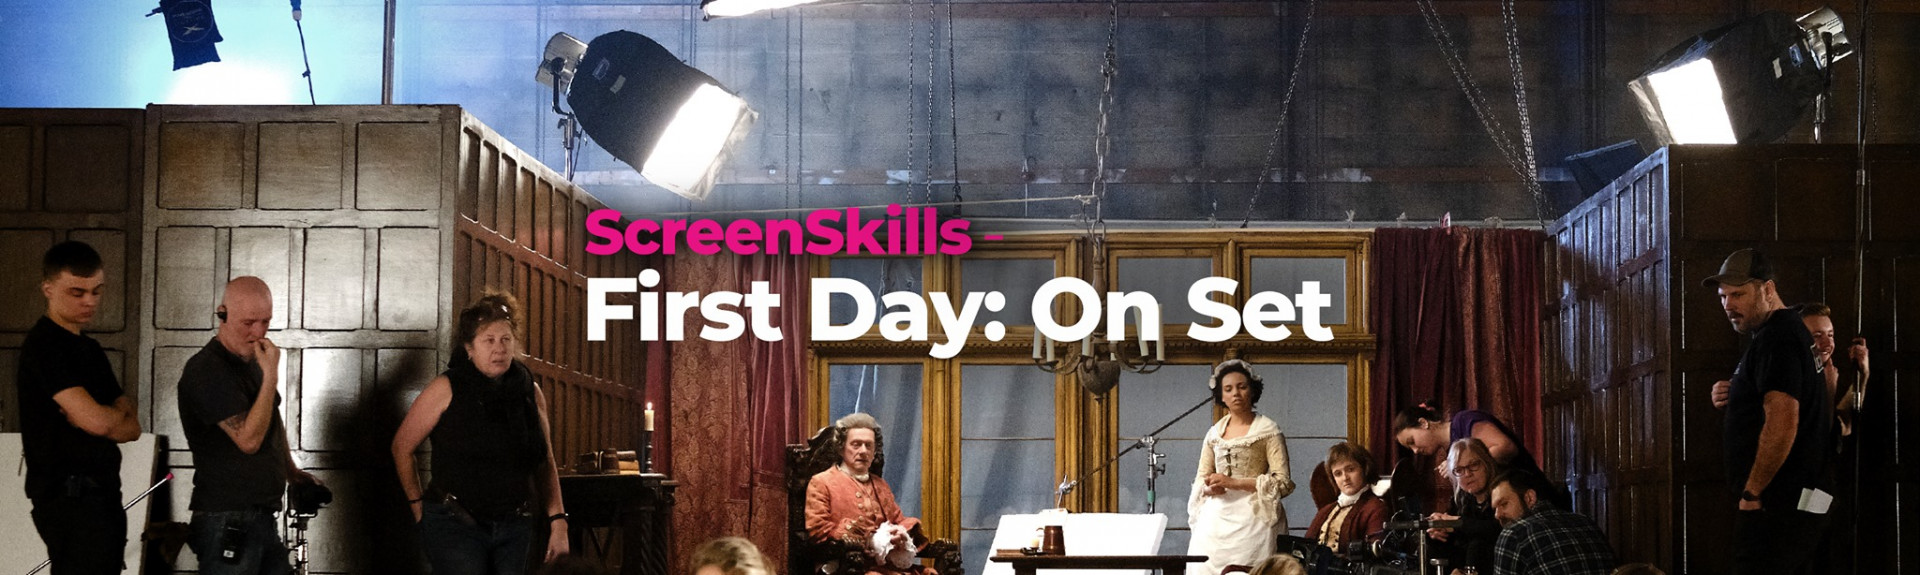 ScreenSkills - First Day: On Set